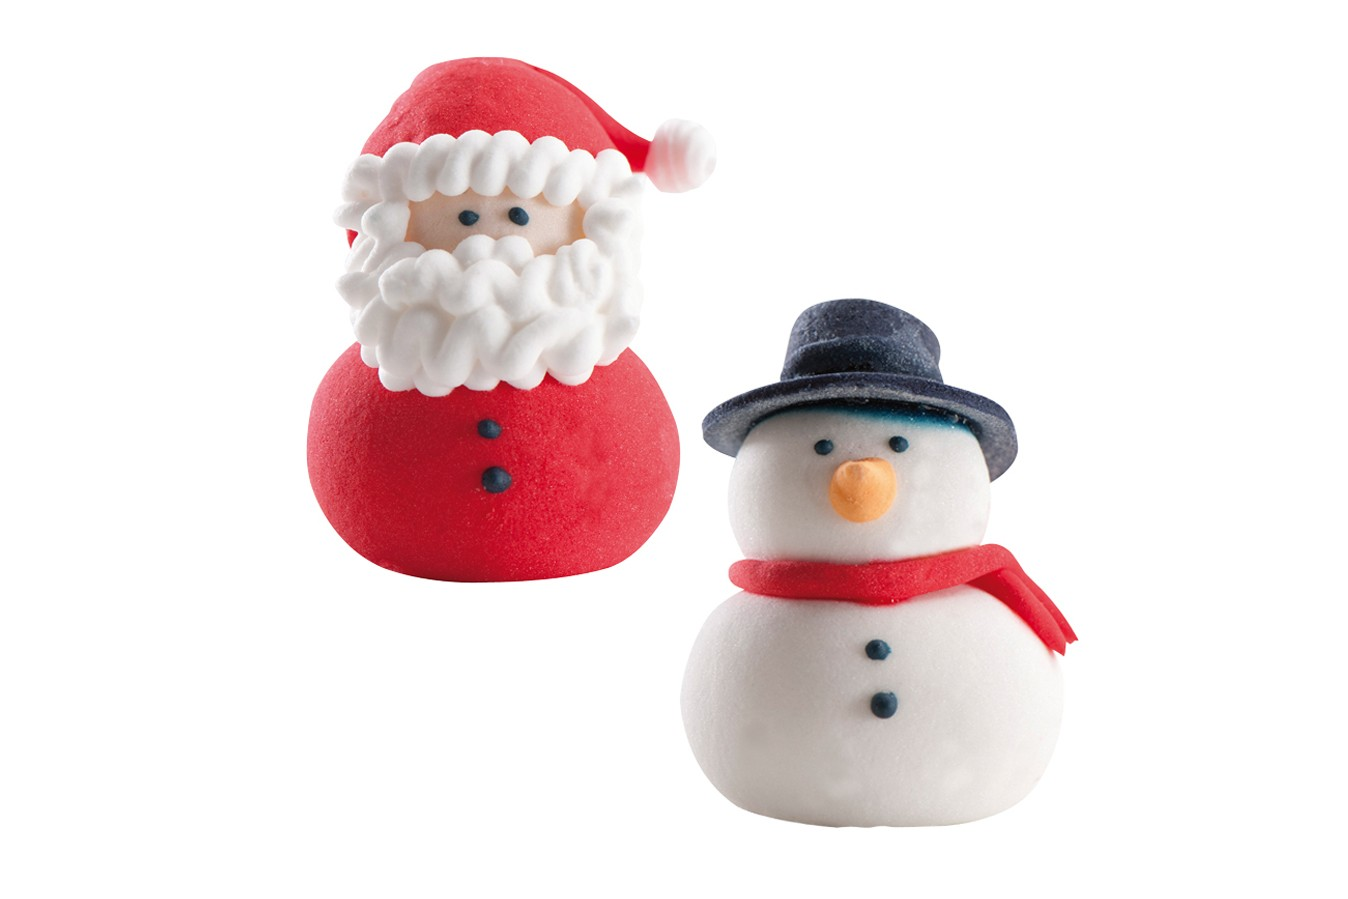 Sugar Cake Decorations For Christmas : Sugar 3D Santa & Snowman Figures Doric Cake Crafts